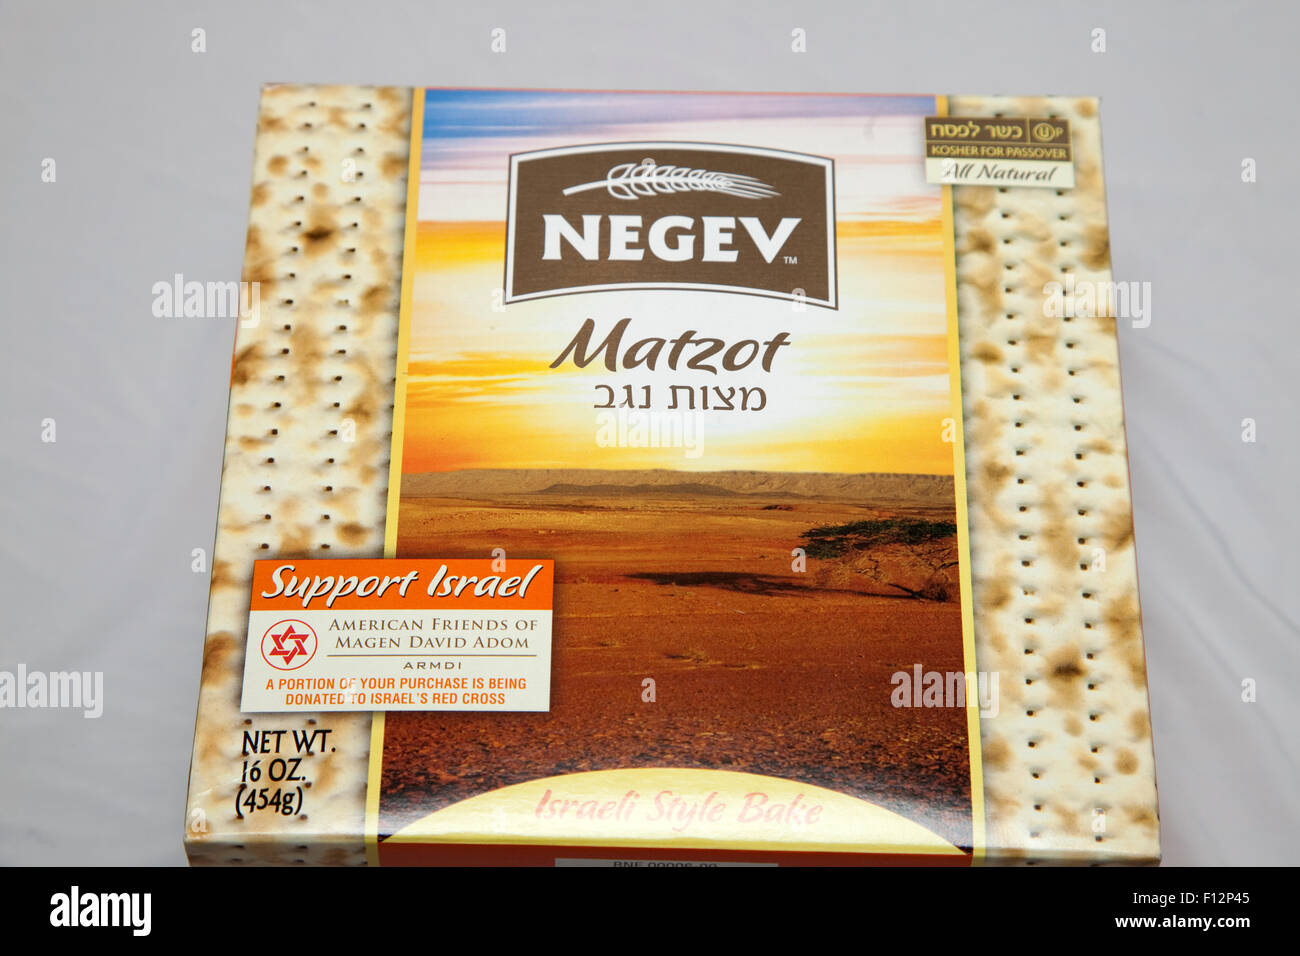 Advertisement for Matzot unleavened bread traditionally eaten by Jews during the Passover Holiday. Minneapolis Minnesota - Stock Image